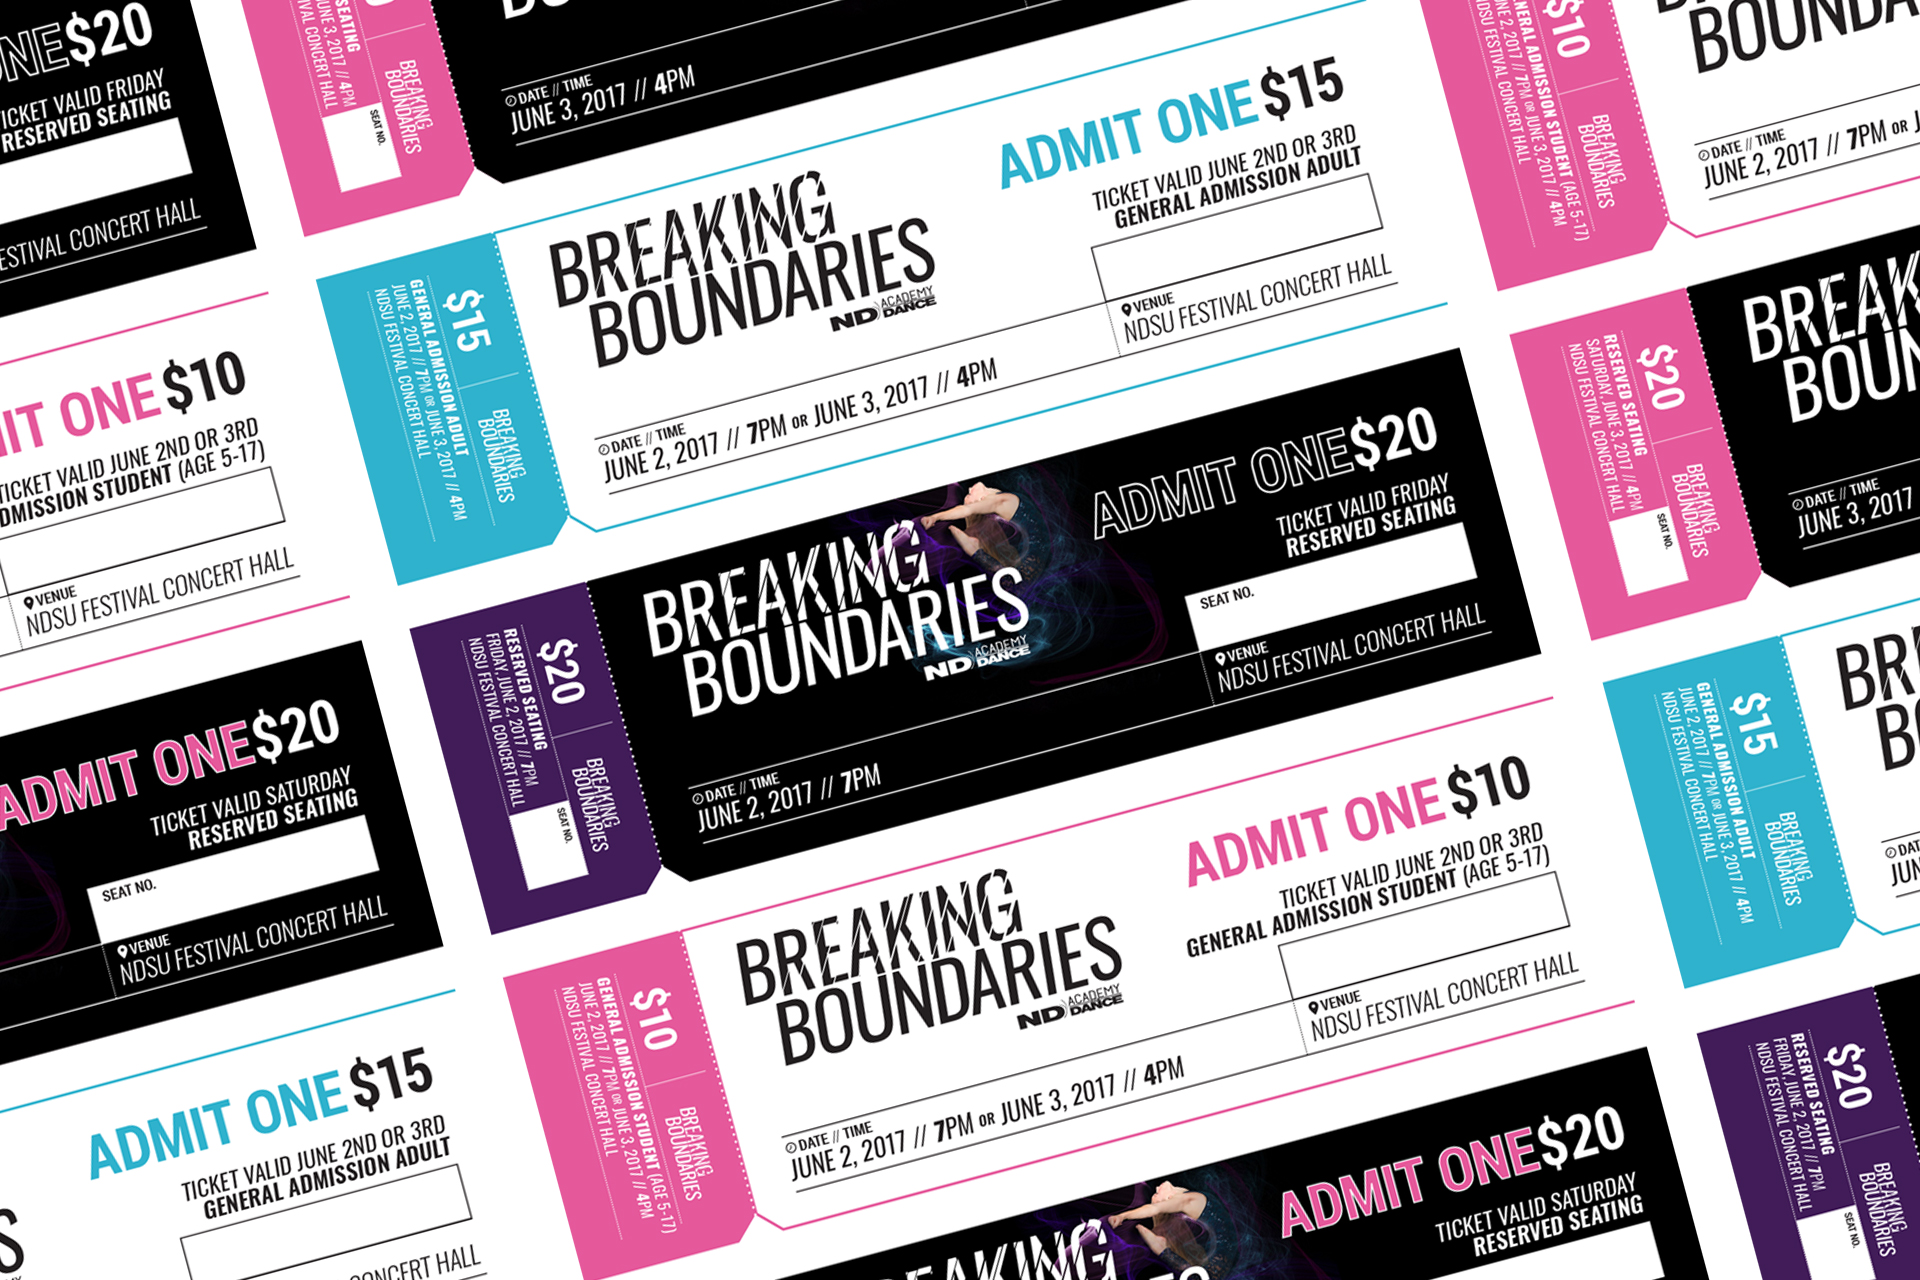 Grid of black and white tickets for Breaking Boundaries recital